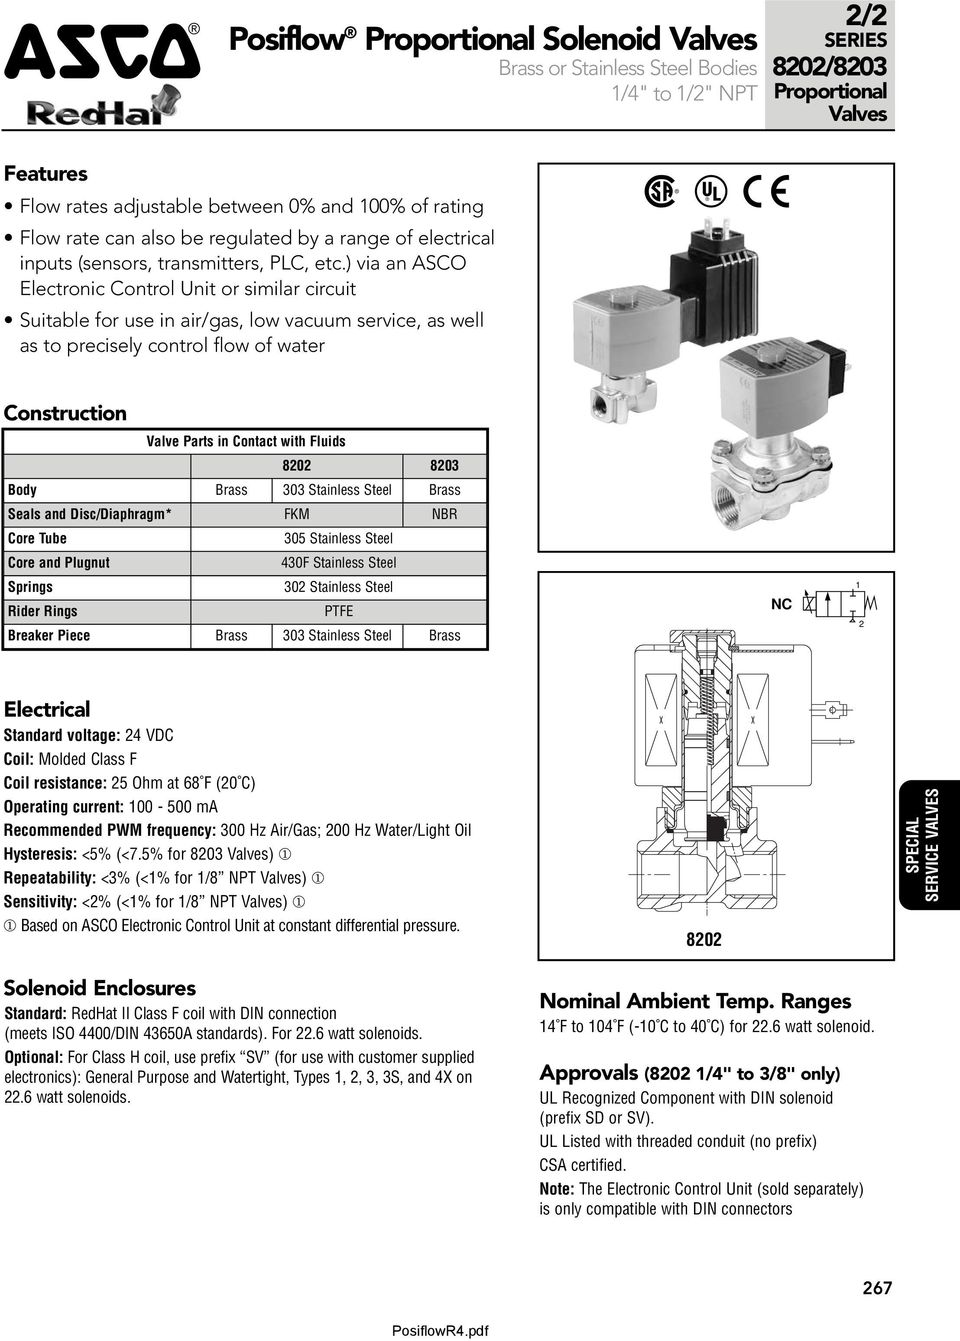 4 Posiflow Proportional Solenoid Valves Pdf Voltage Series Ss And Parallel Circuits Via An Asco Electronic Control Unit Or Similar Circuit Suitable For Use In Air